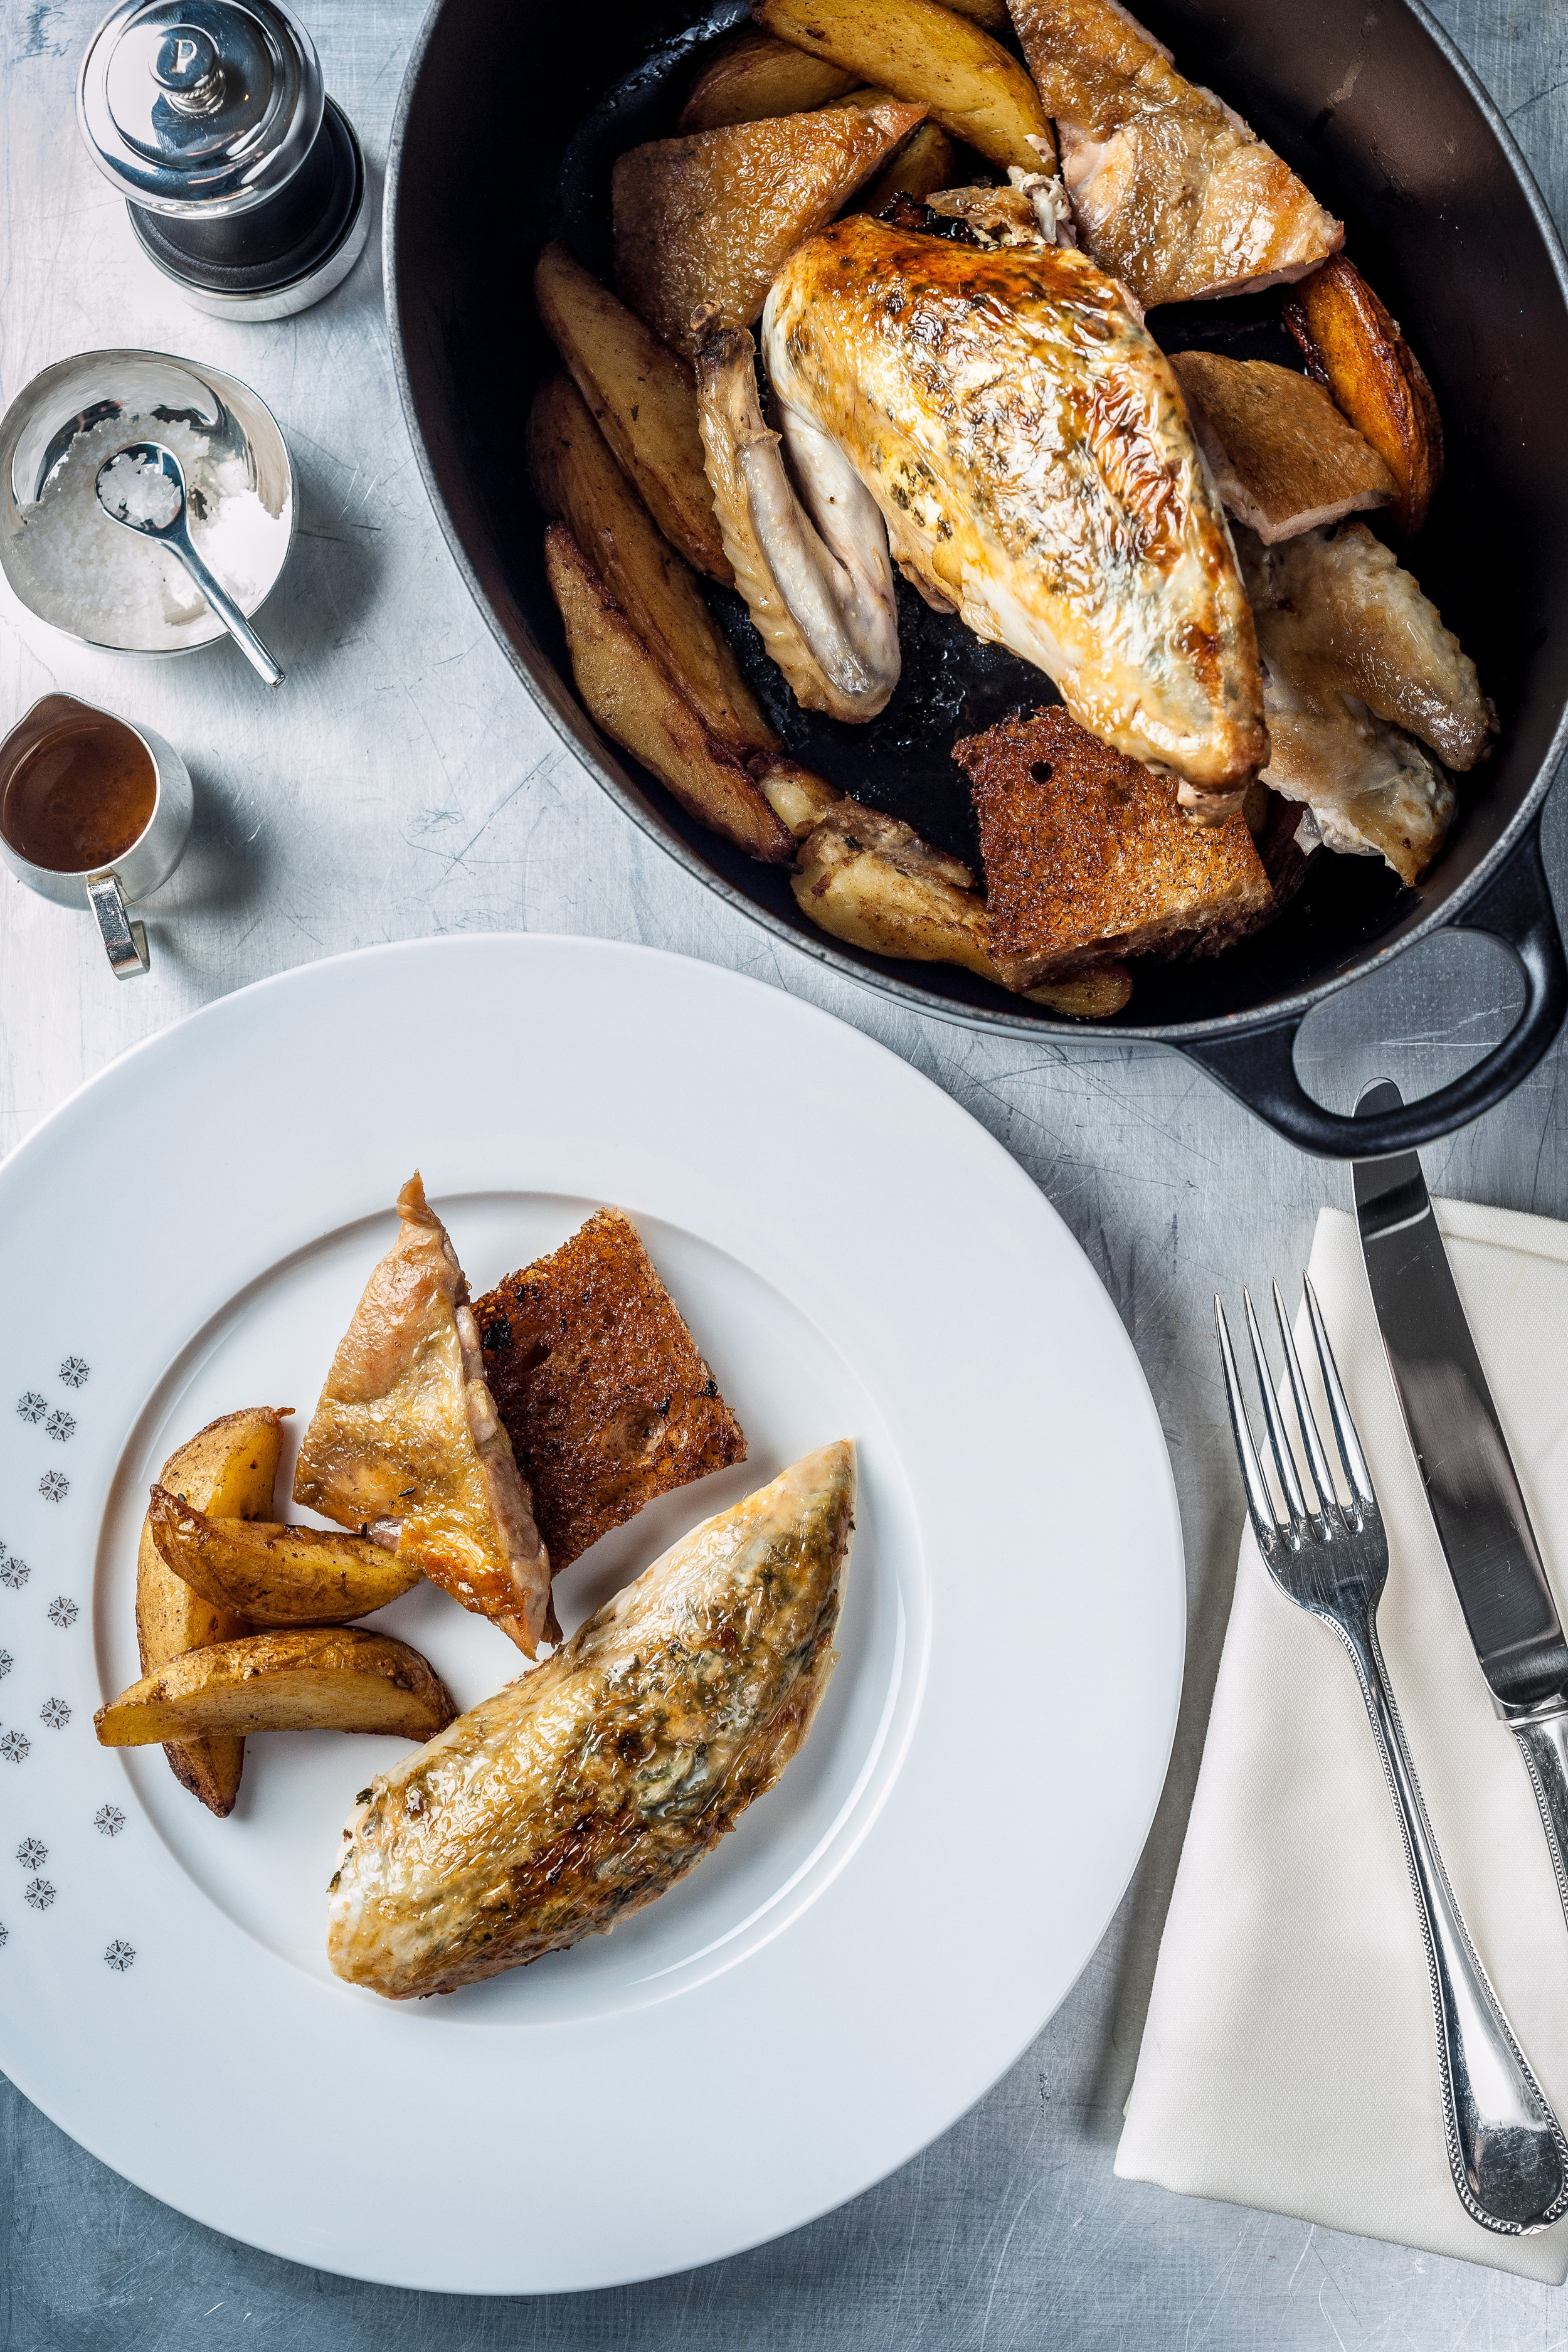 The Grill at The Dorchester - Black leg free-range chicken, 'street corner' potatoes, toasted country bread.jpg